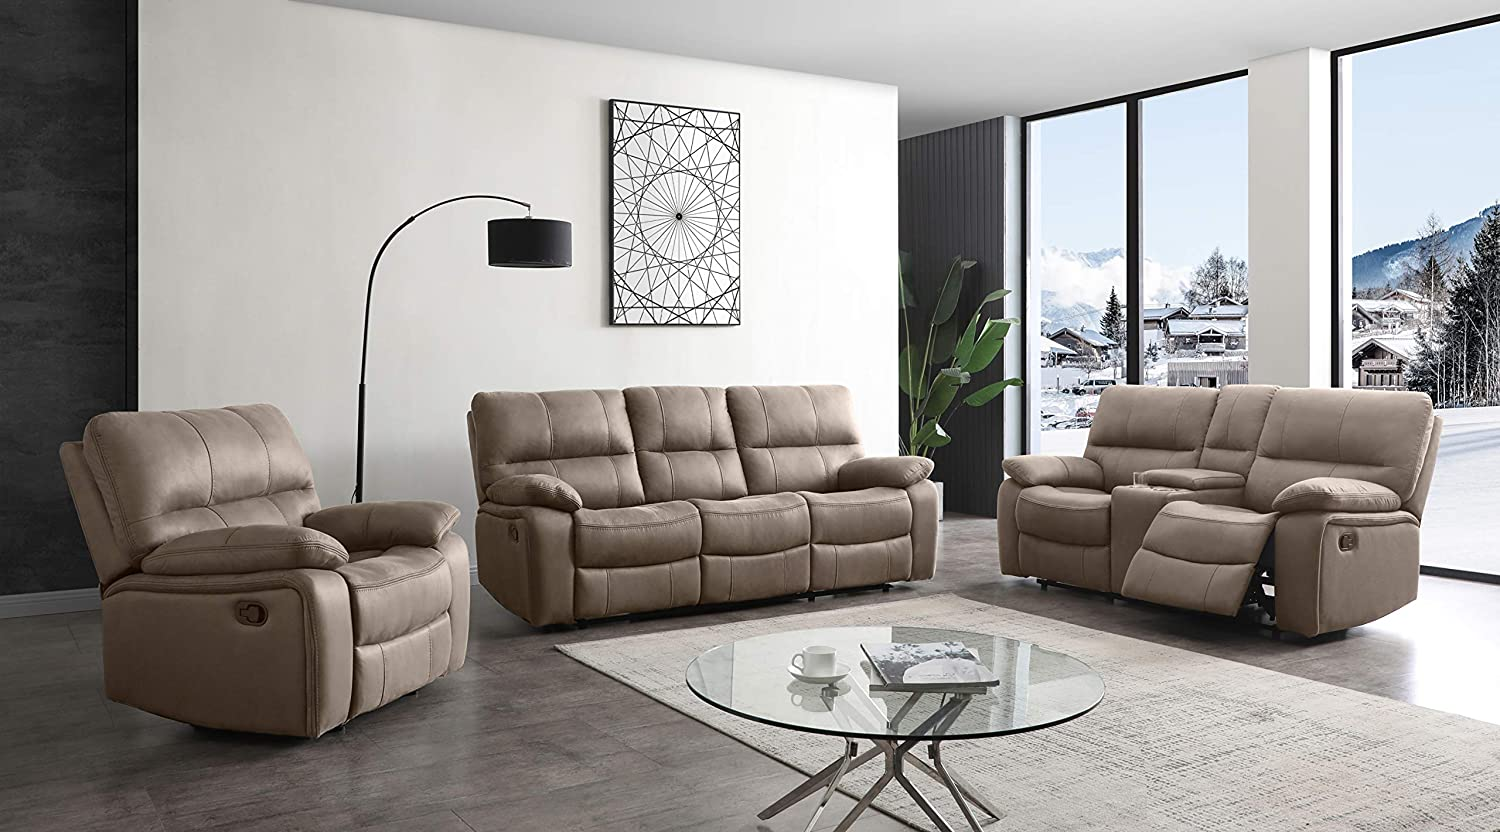 Betsy Furniture Microfiber Reclining Sofa Couch Set Living Room Set 8007 (Taupe, Sofa+Loveseat+Recliner)